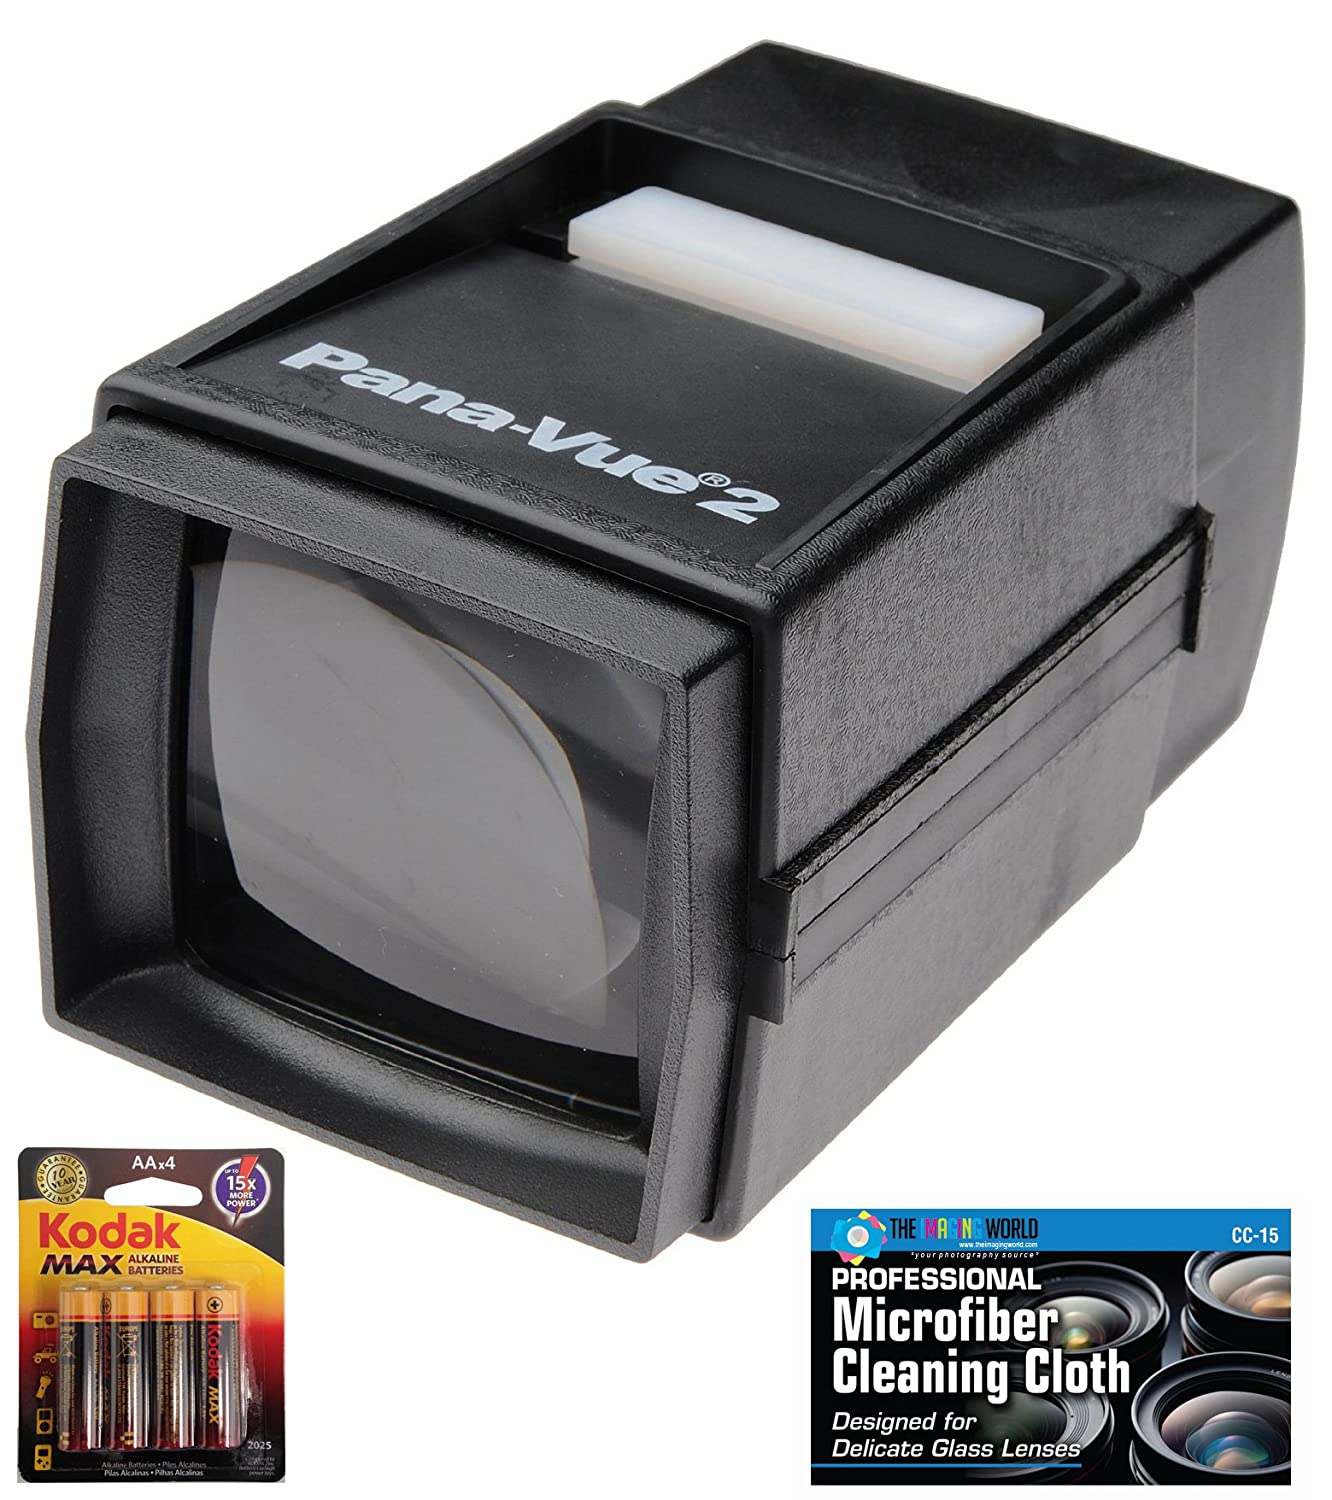 Pana-Vue 2 Illuminated Slide Viewer + AA Batteries + Microfiber Cleaning Cloth The Imaging World PV2 K1